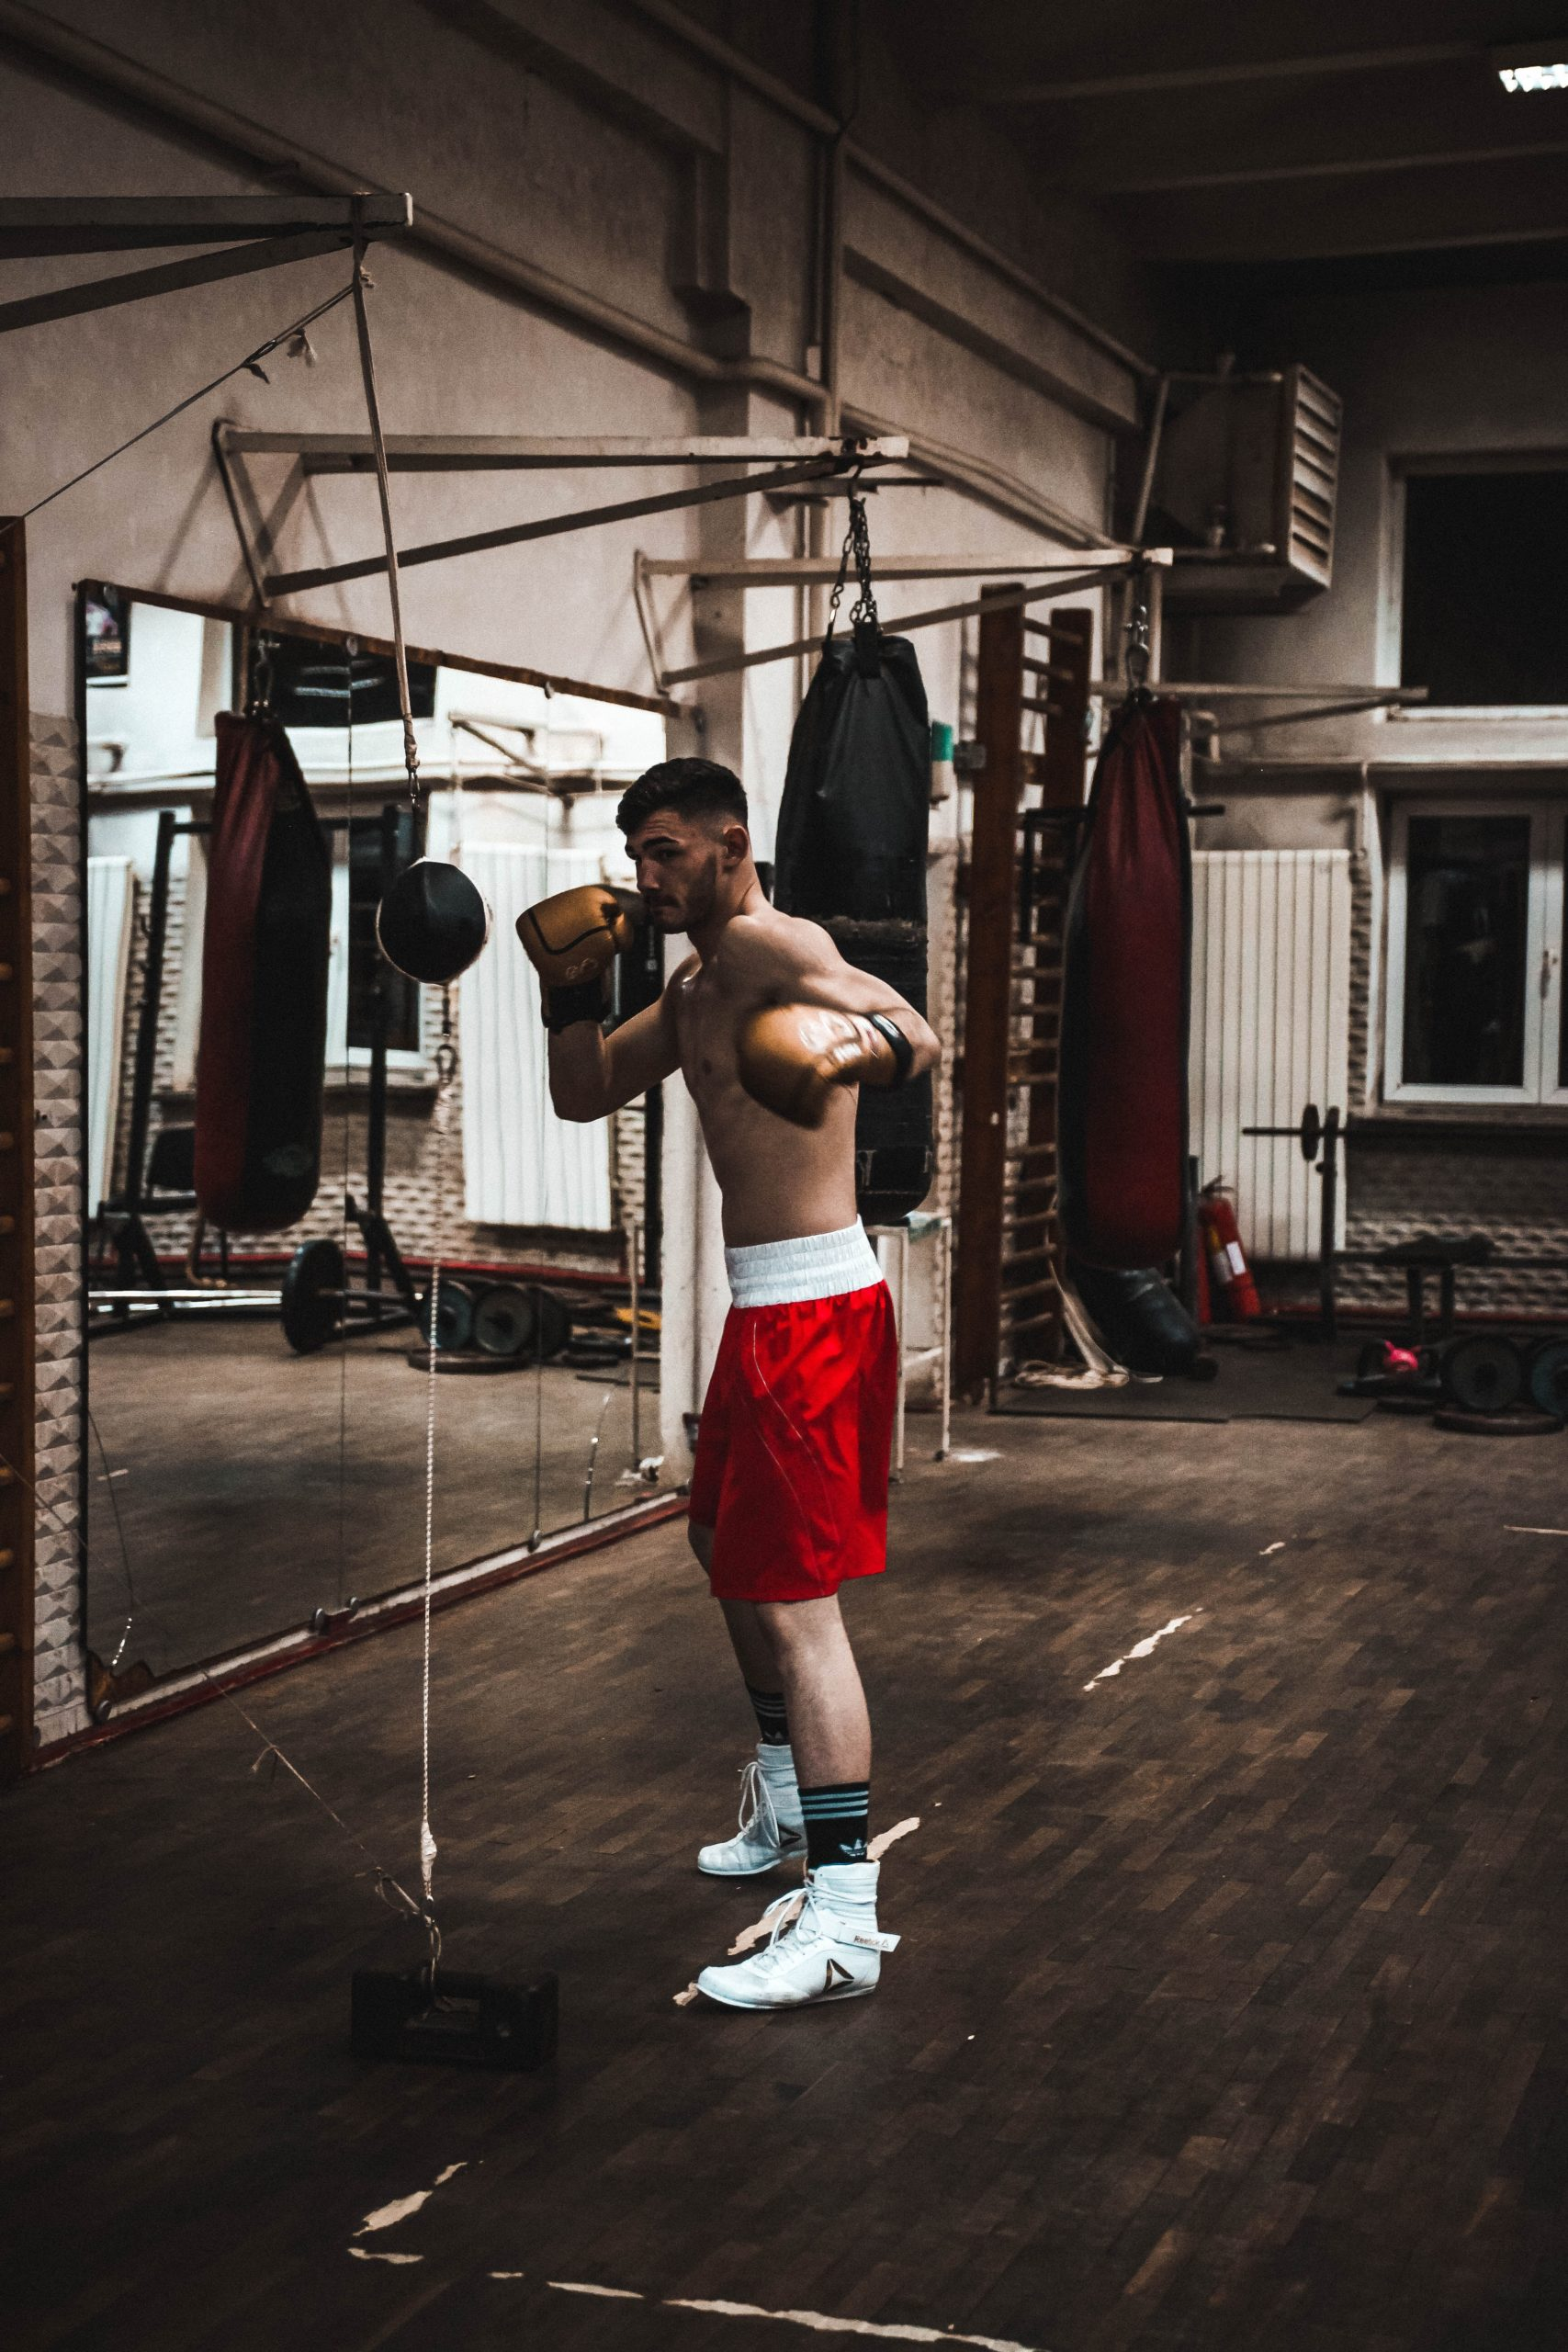 Top 6 Best Boxing Shoes [Buying Guide]